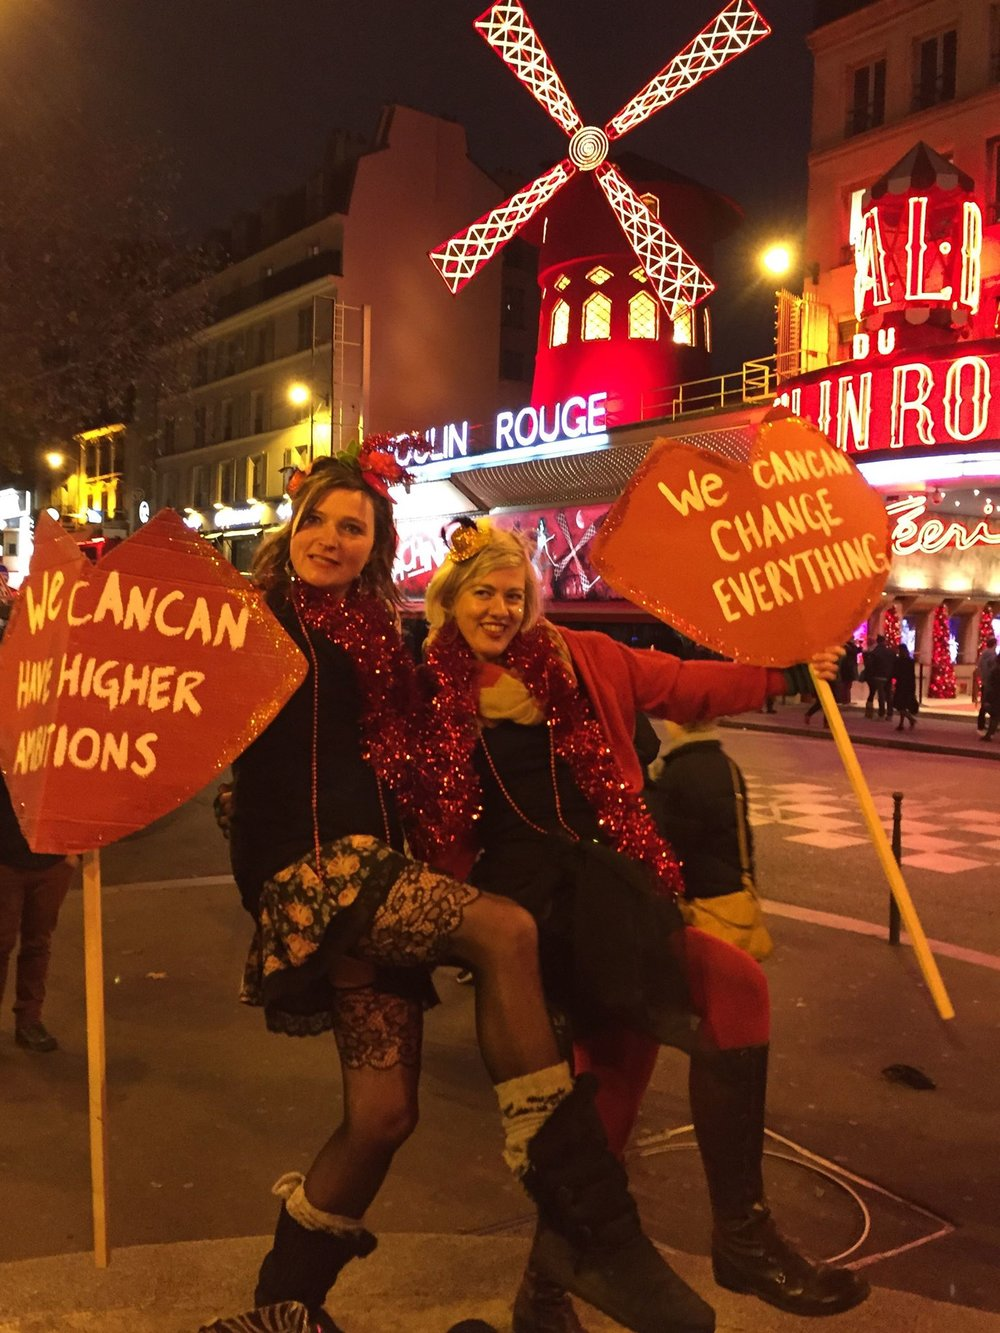 Alex Kelly at the We CanCan action at Moulin Rouge, Paris, during COP21 climate conference, Dec 2015